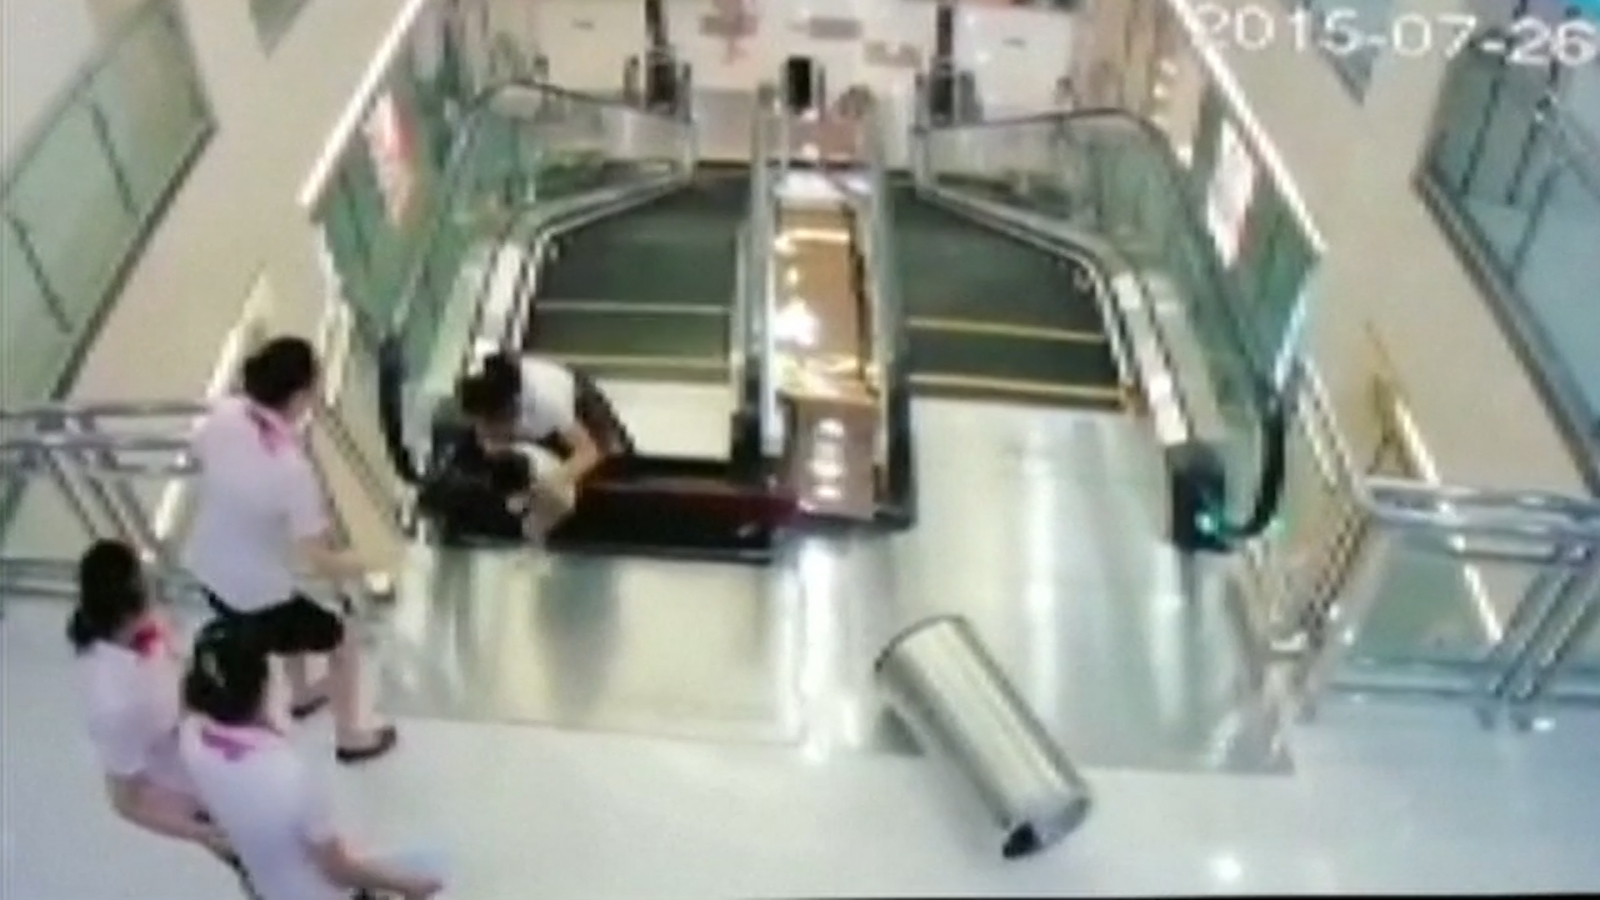 Chinese woman escalator incident